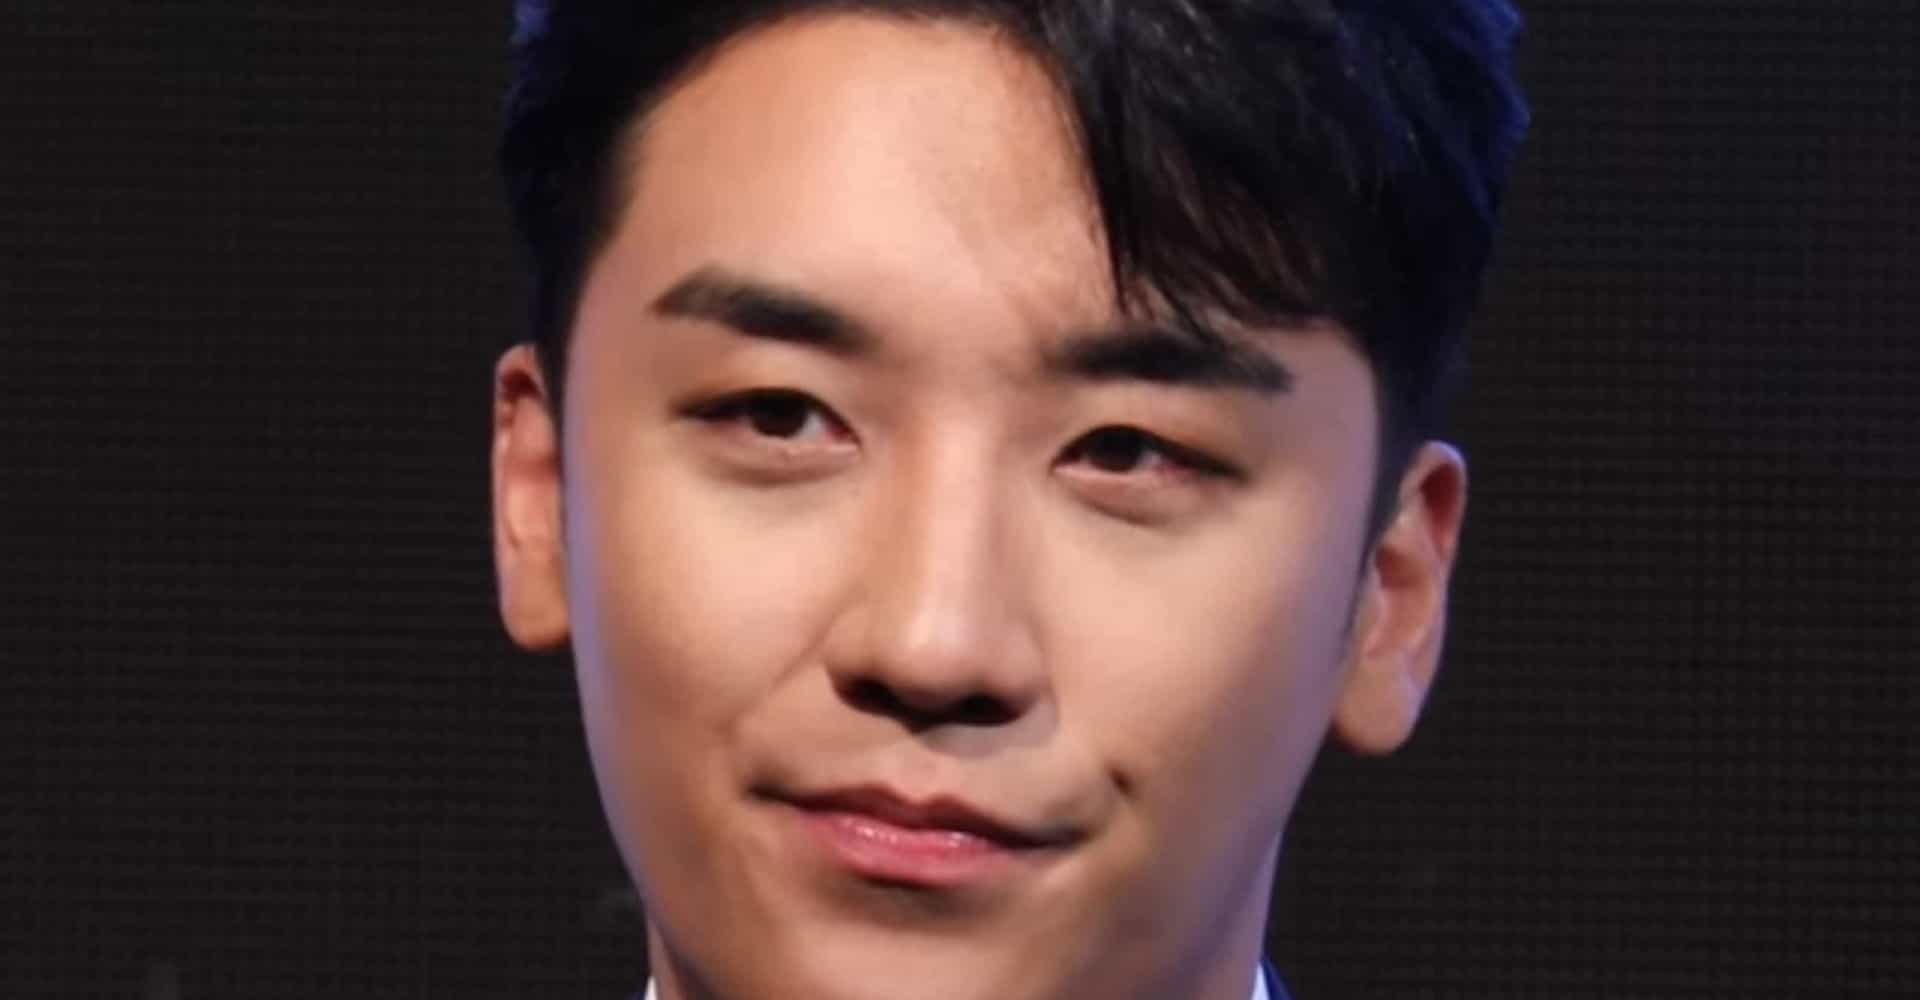 The story of Seungri and South Korean celebs with short careers